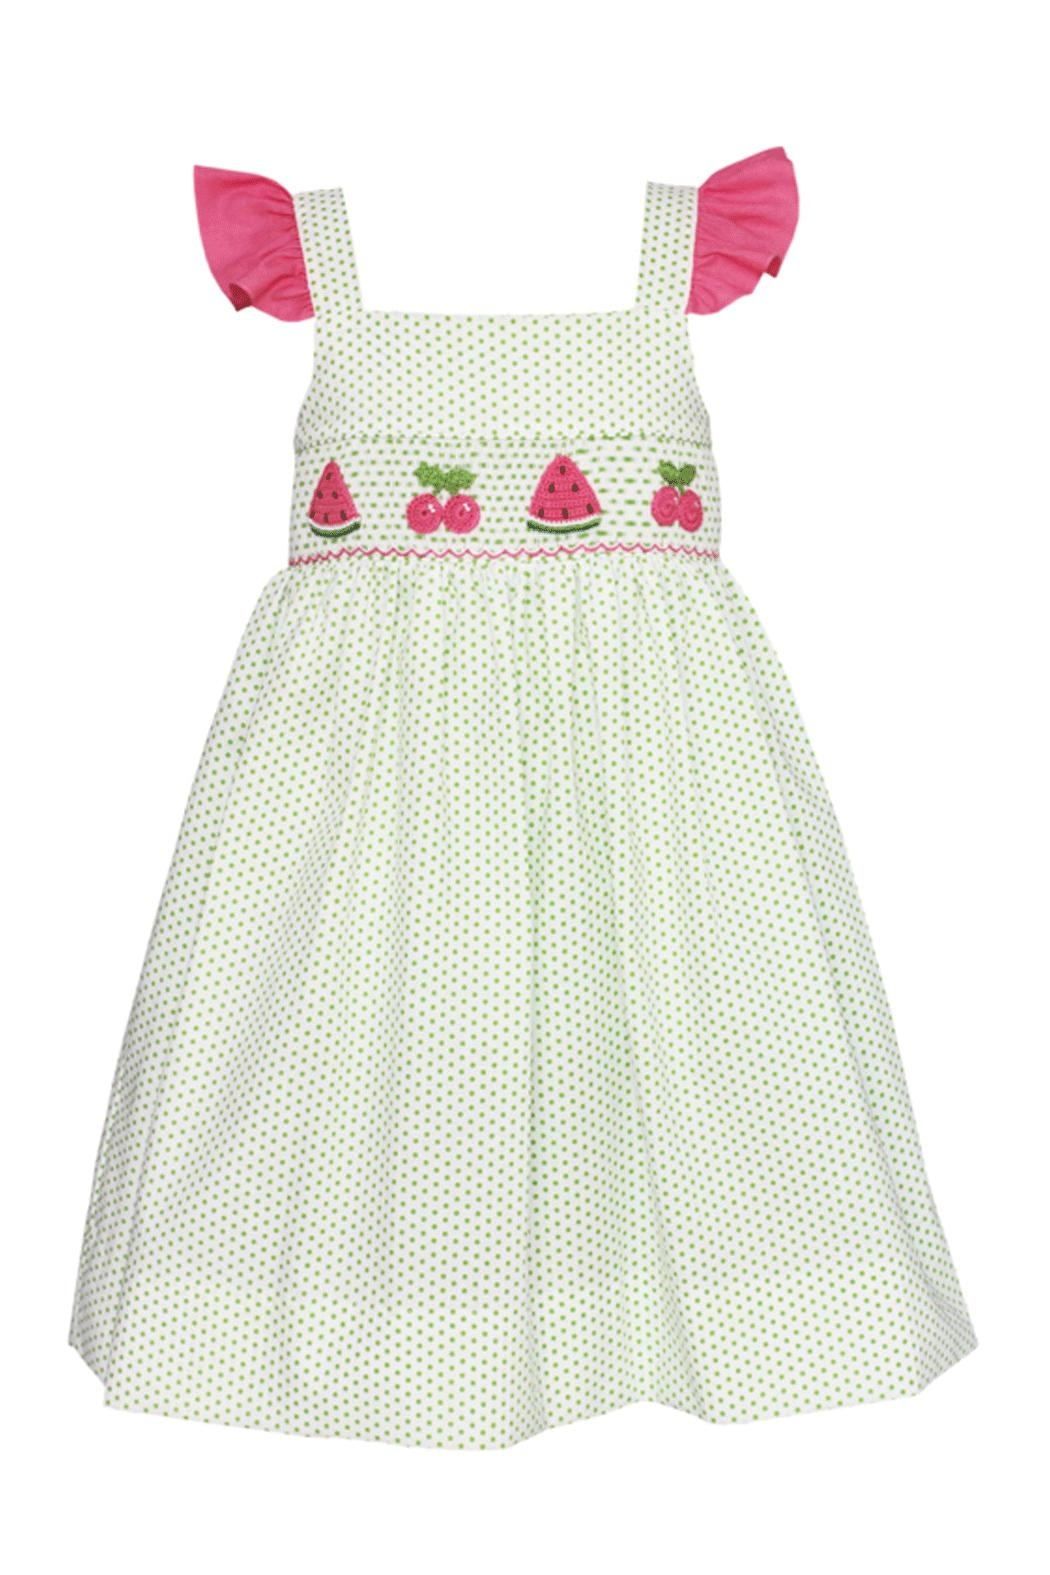 Claire & Charlie Smocked Dress - Main Image